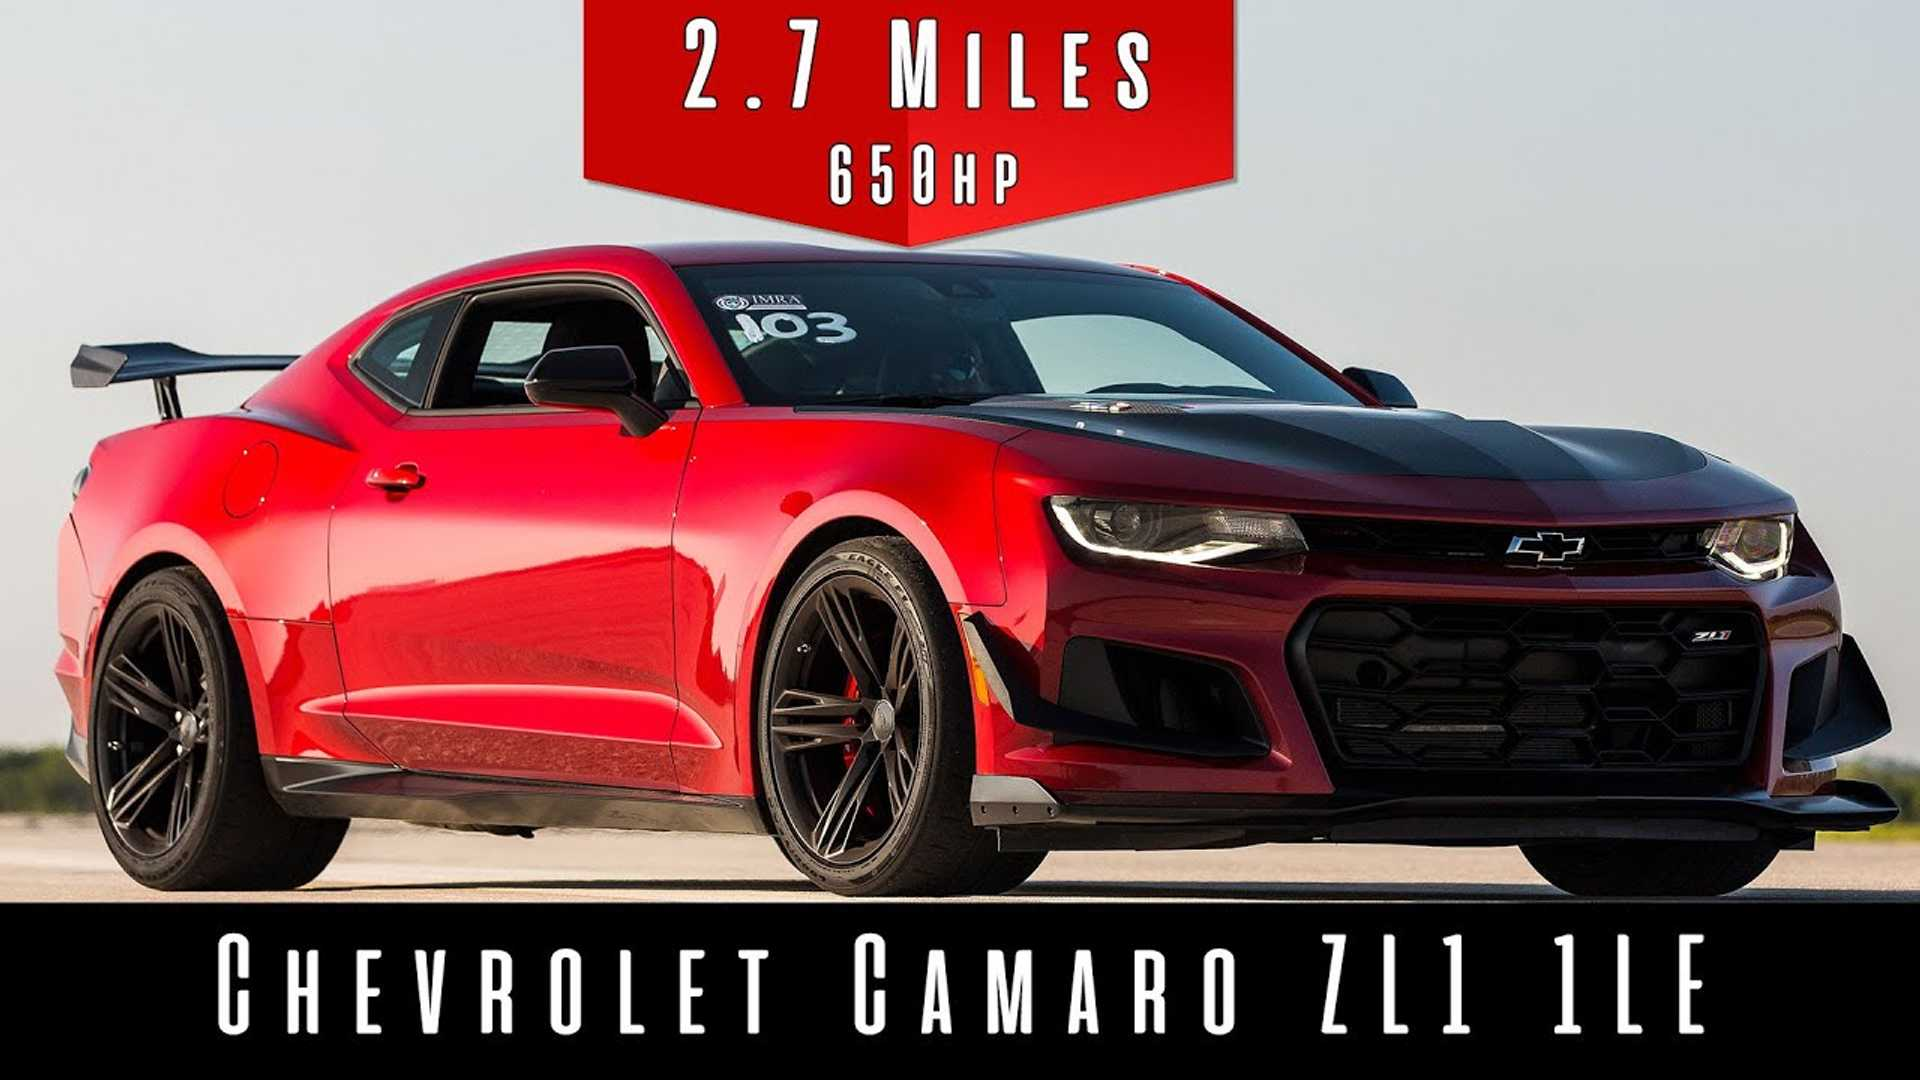 Chevy Camaro Zl1 1le >> See This 2019 Chevy Camaro Zl1 1le Use All 650 Hp In Top Speed Run